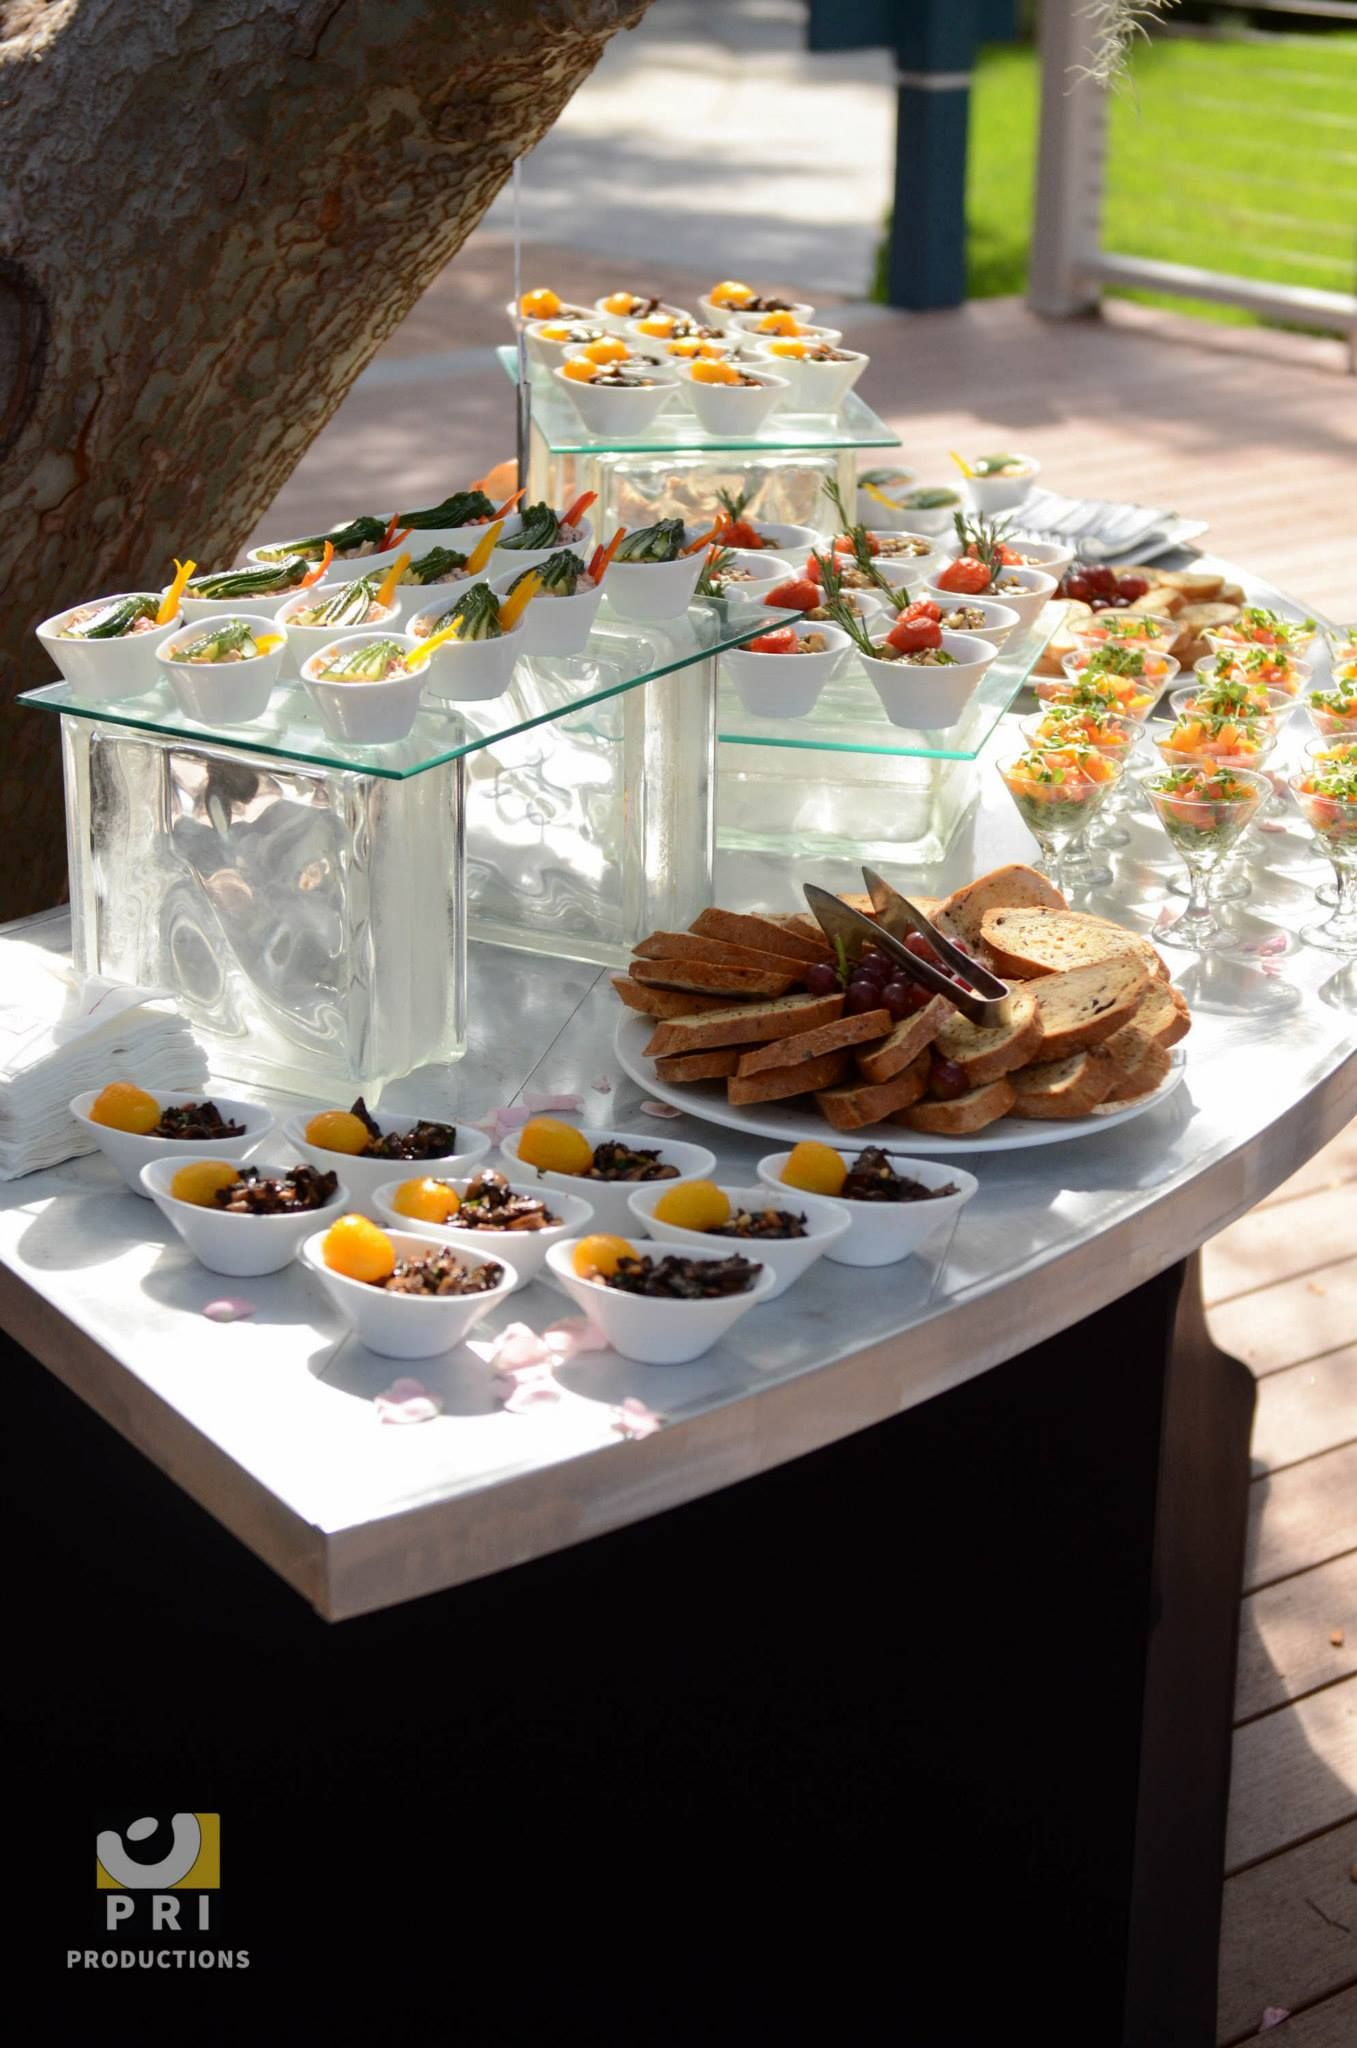 outdoor table set up for wedding guests' appetizers  food  drink  - outdoor table set up for wedding guests' appetizers